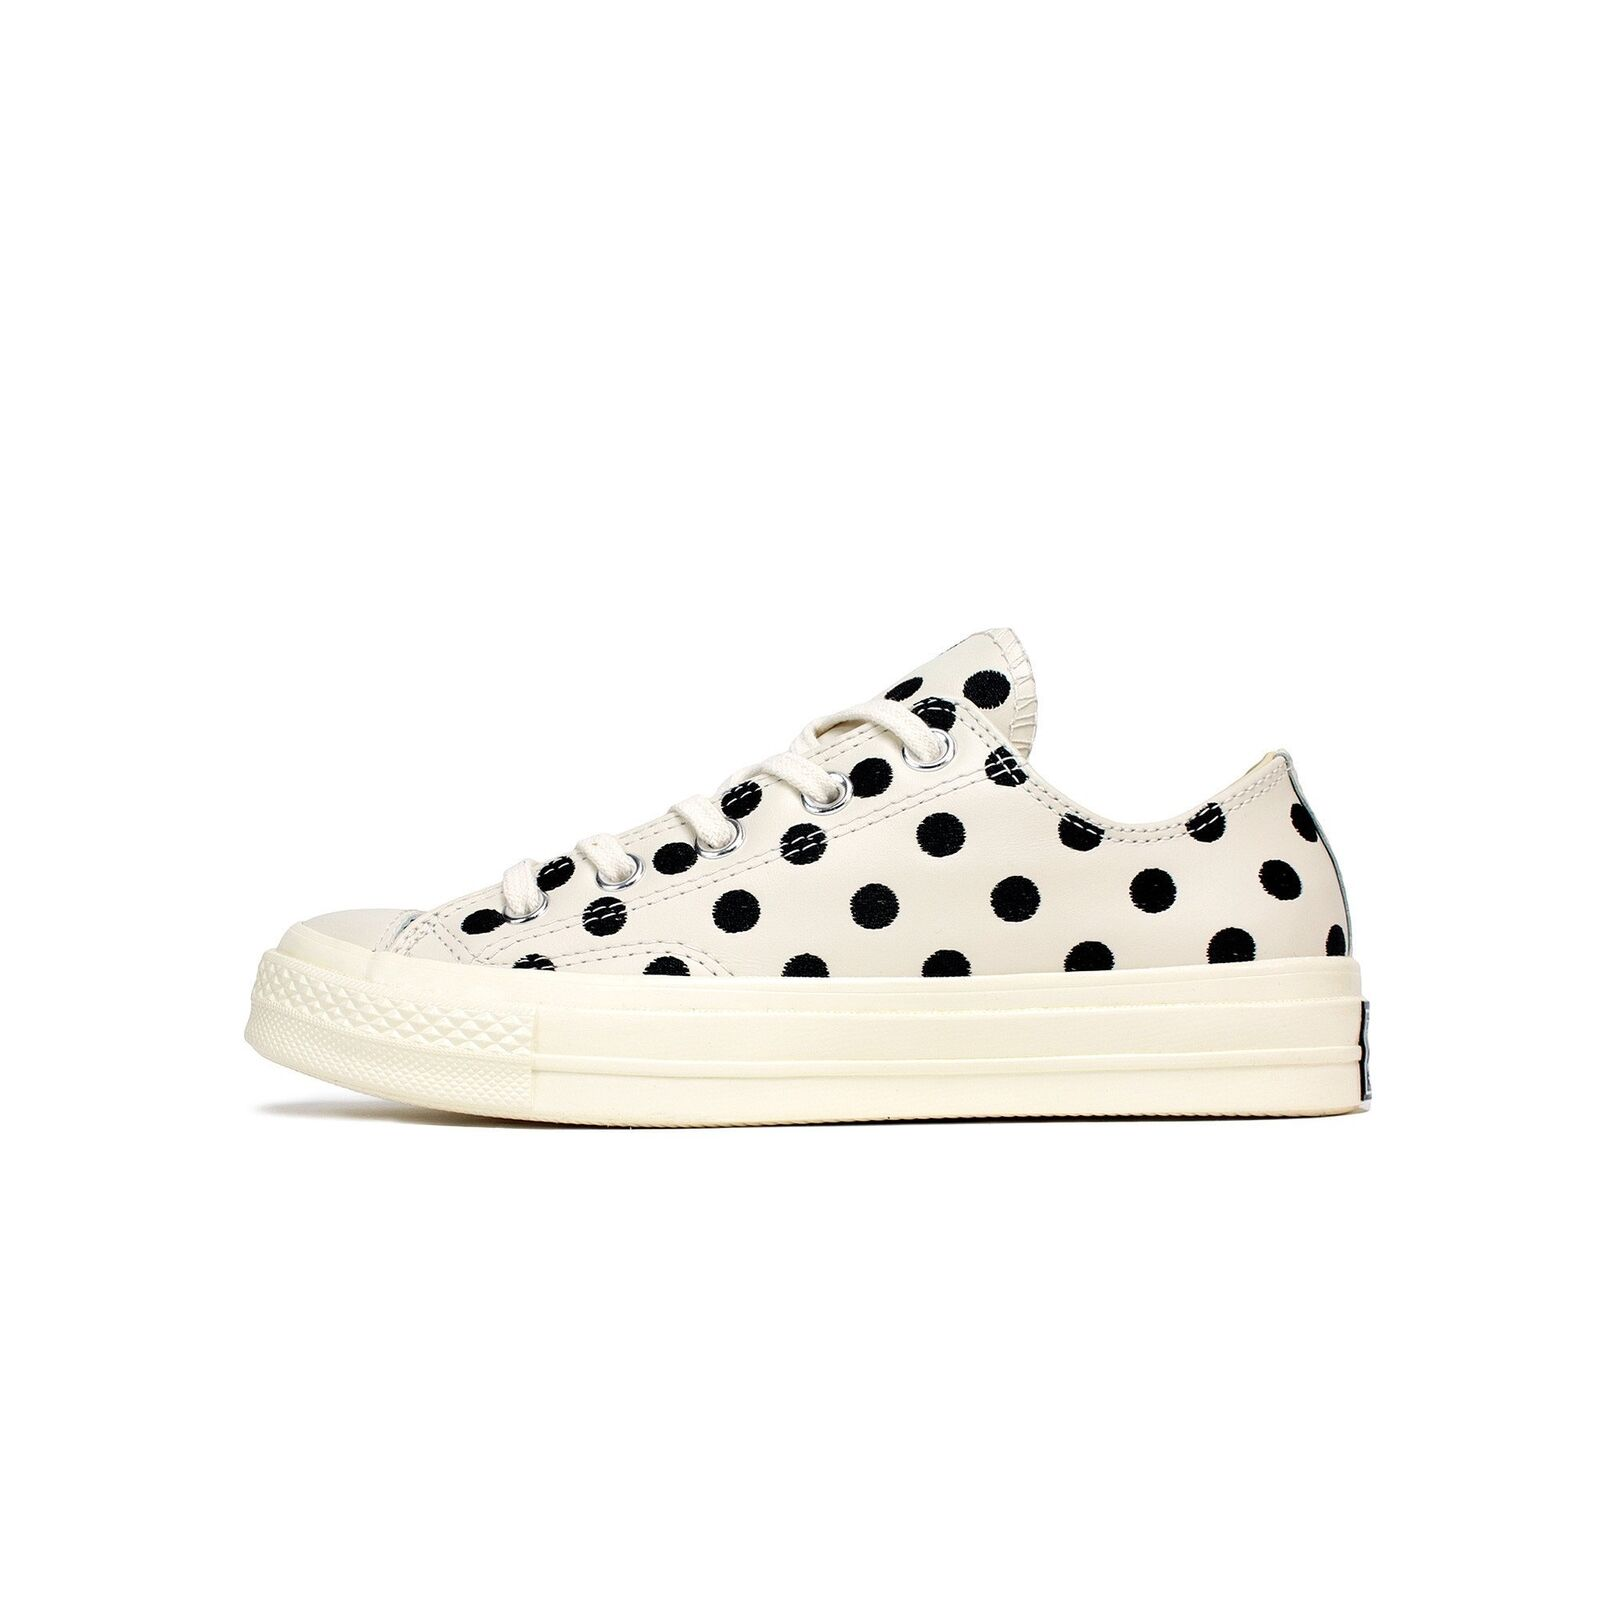 Men's Converse Chuck Taylor All Star 70s Ox Polka Dot Parchment Black 155460C